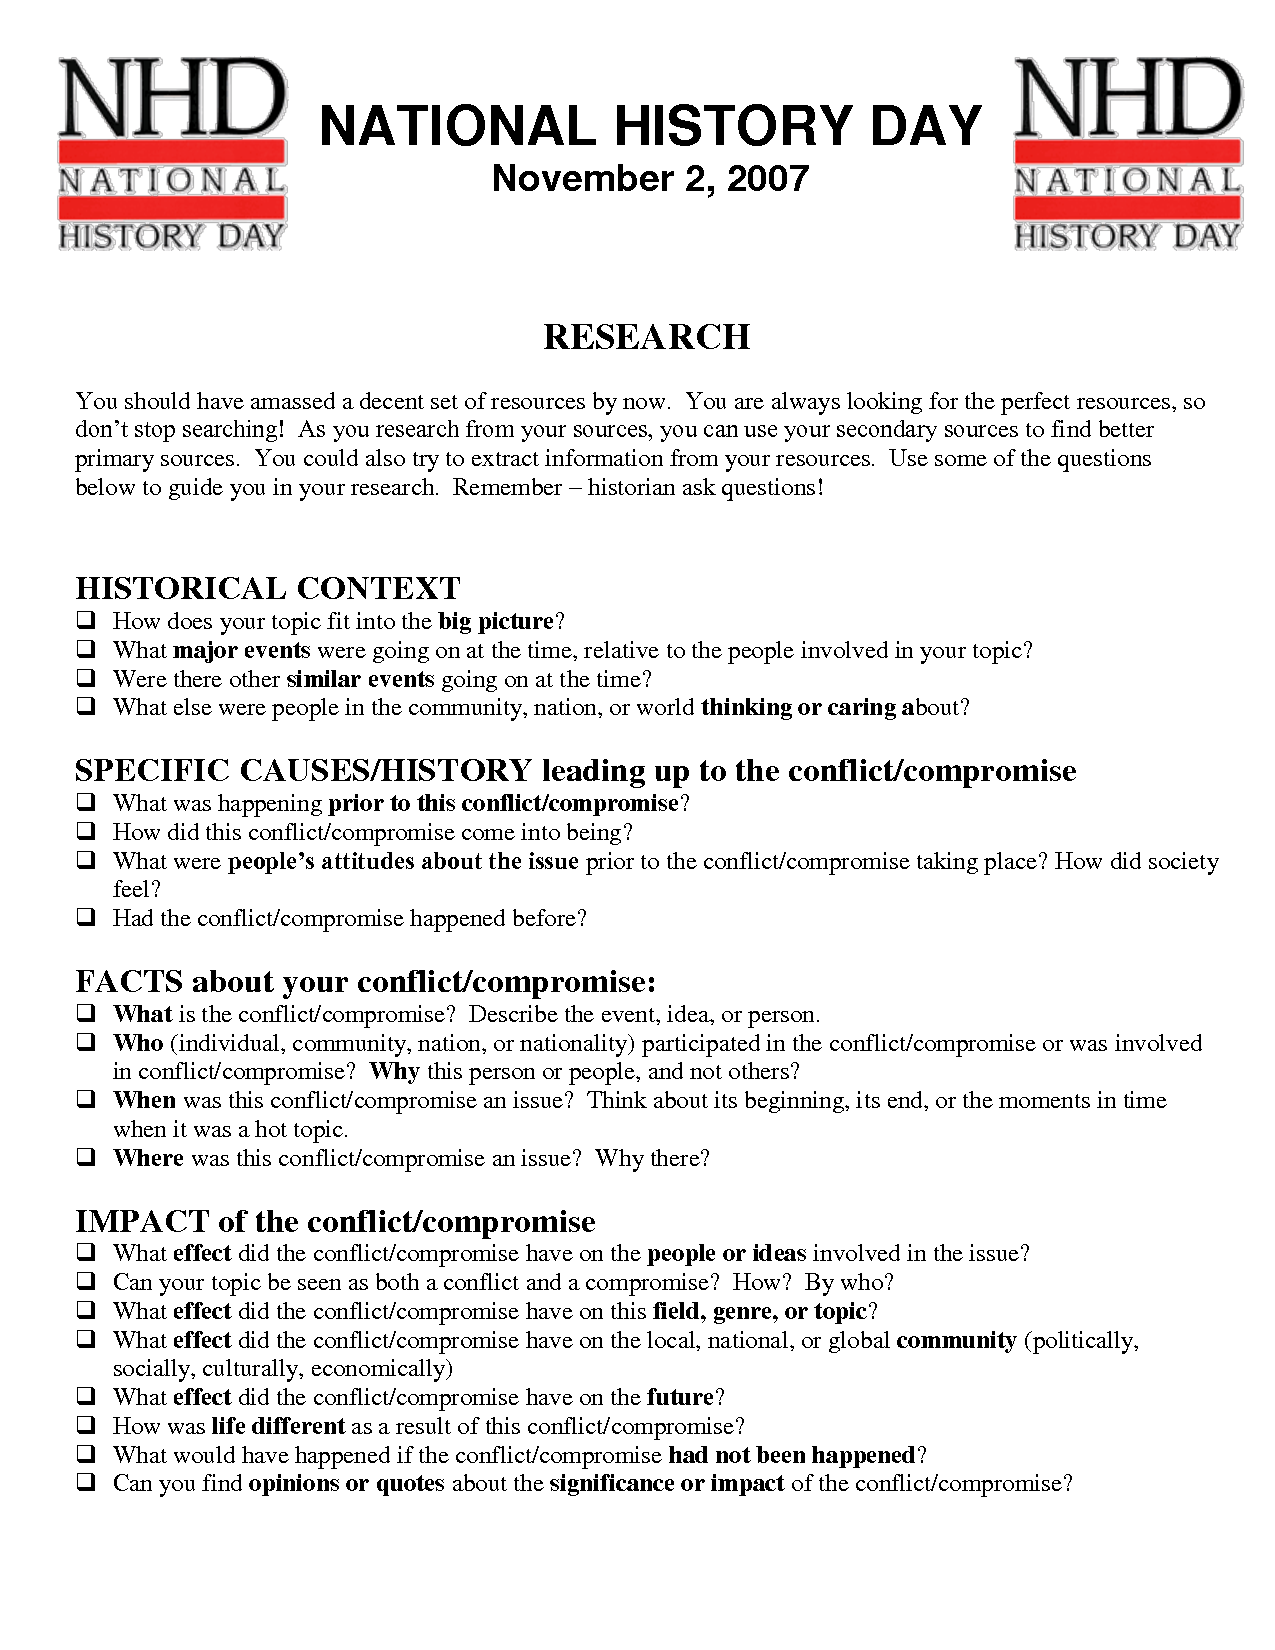 007 College Essays Application Example Of Examples Process Essay Topics L Marvelous High School For Full